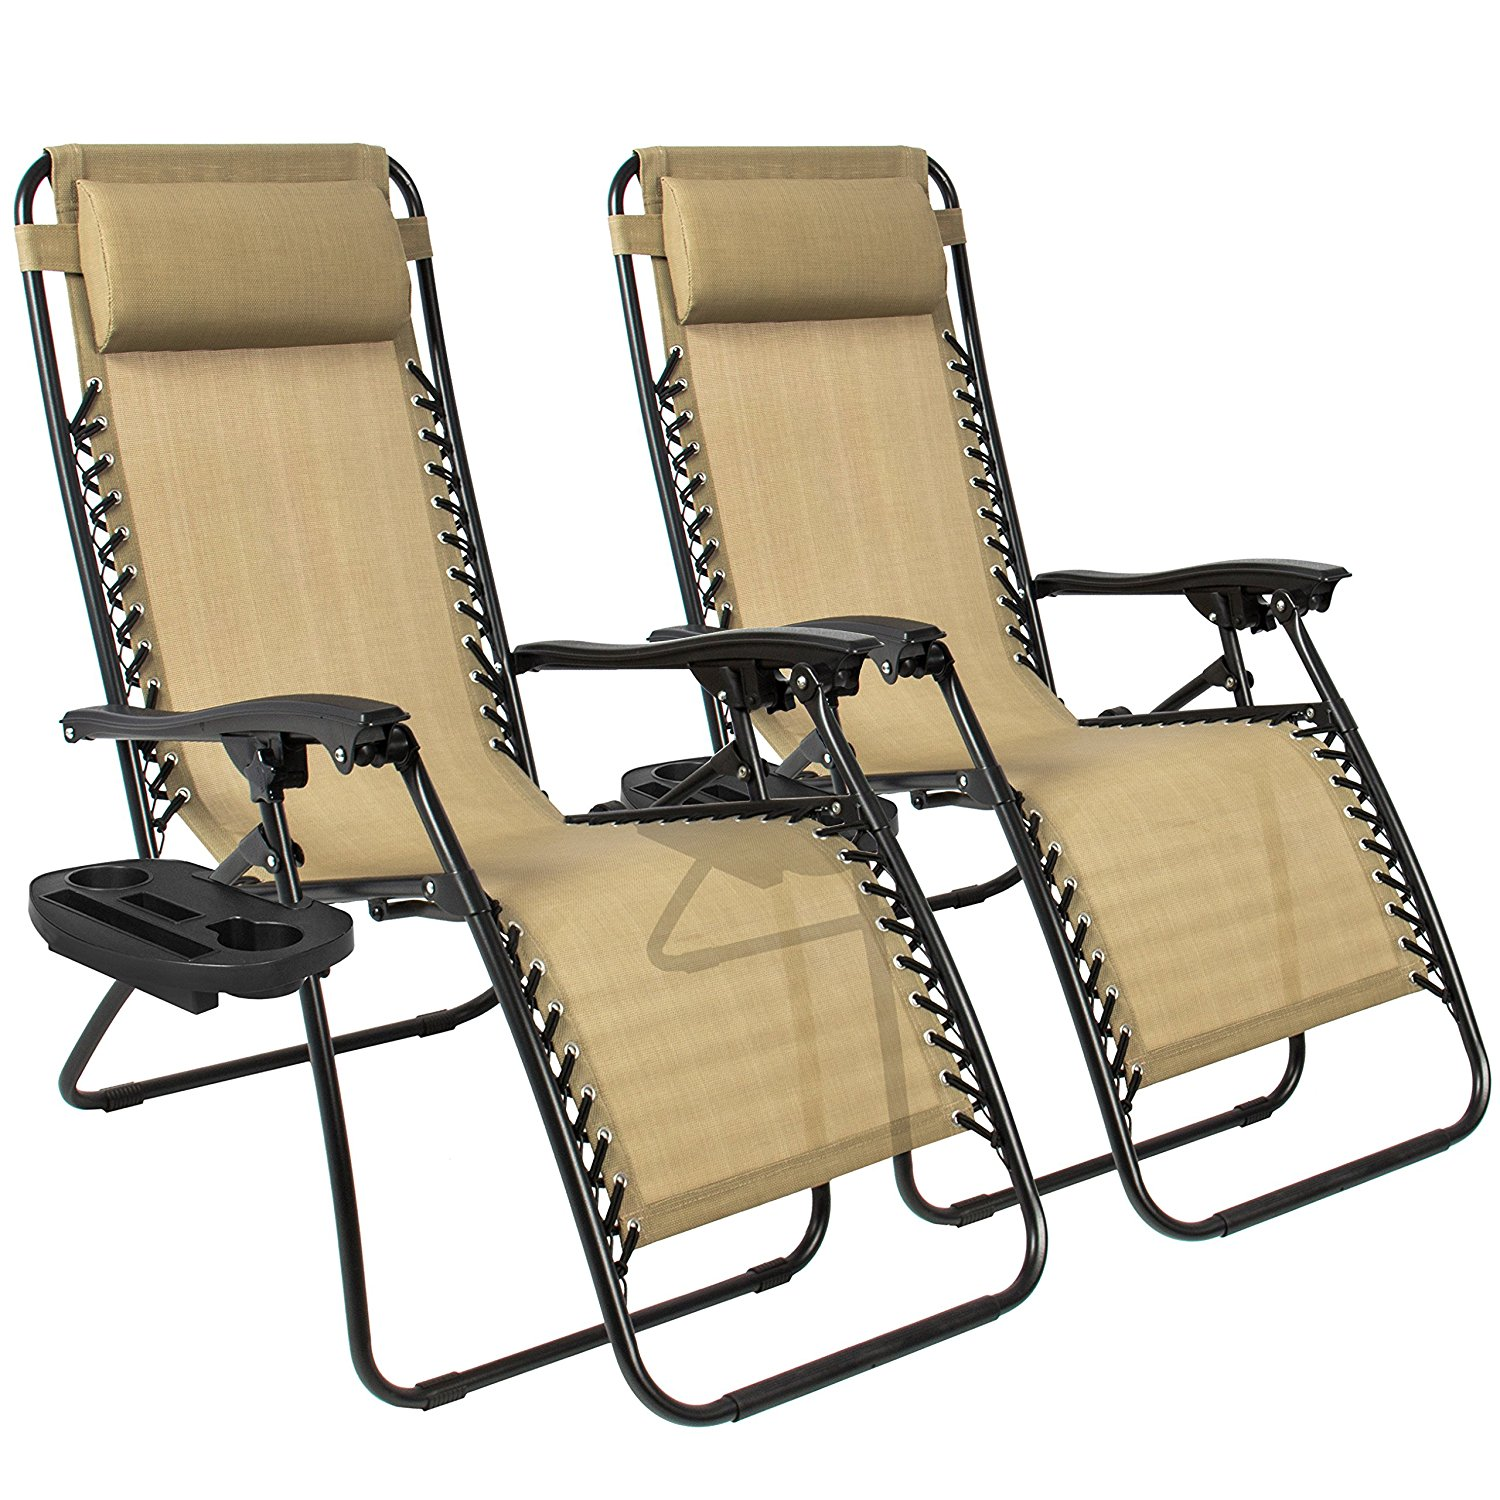 Best choice products zero gravity chair review best zero for Chair zero gravity